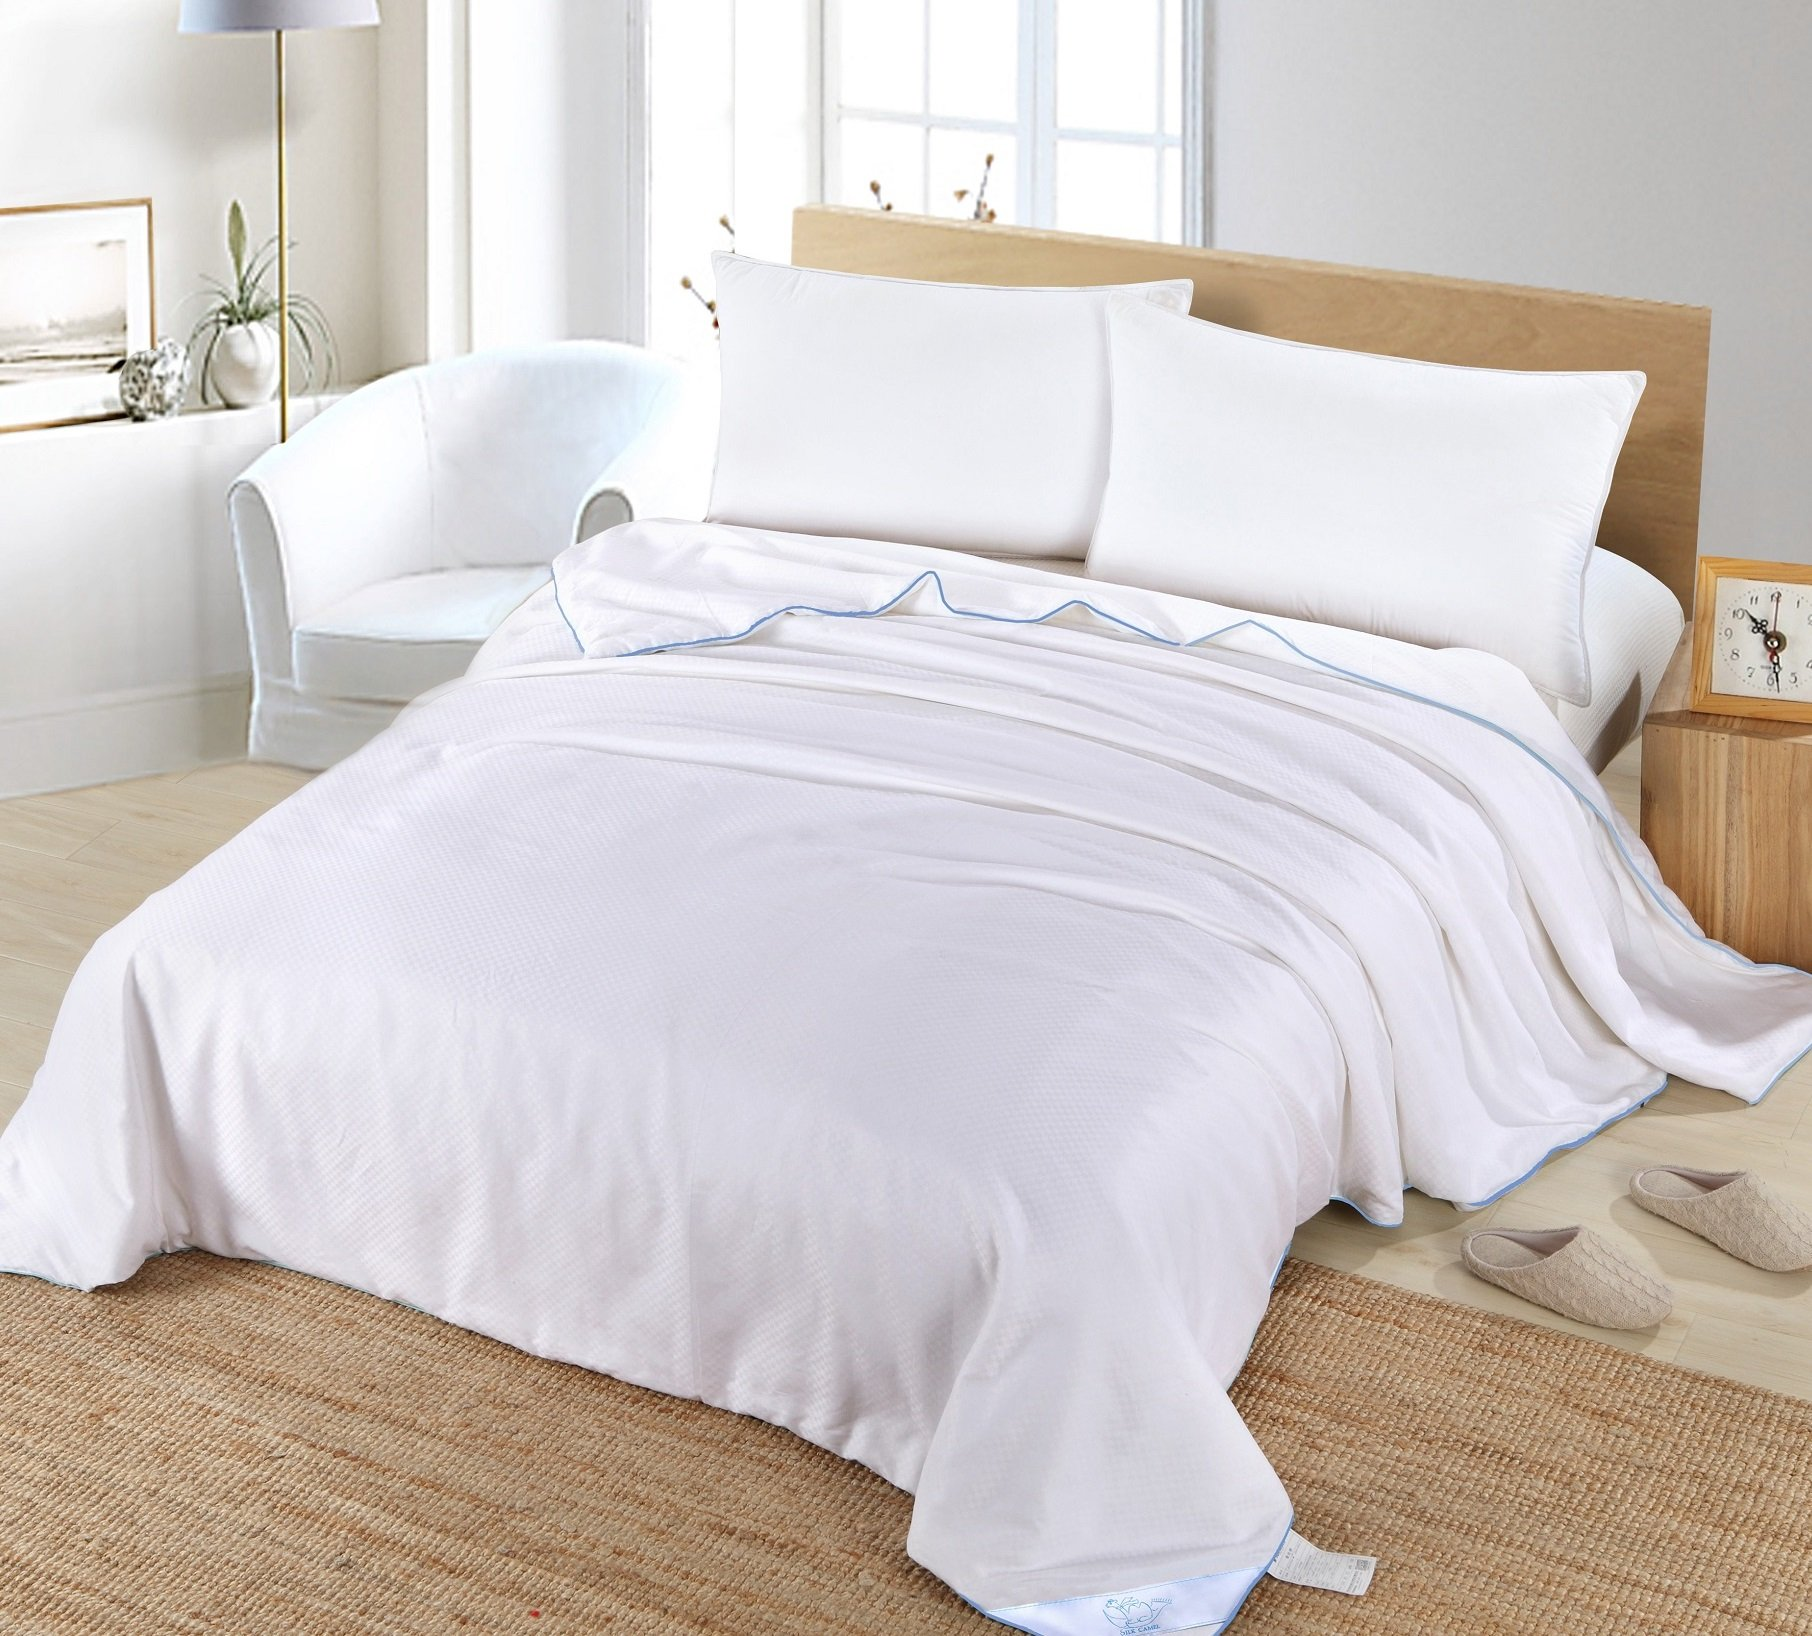 Silk Camel Luxury Allergy-free Comforter / Duvet Filling with 100% Natural long strand mulberry Silk for Summer Season - Queen Size